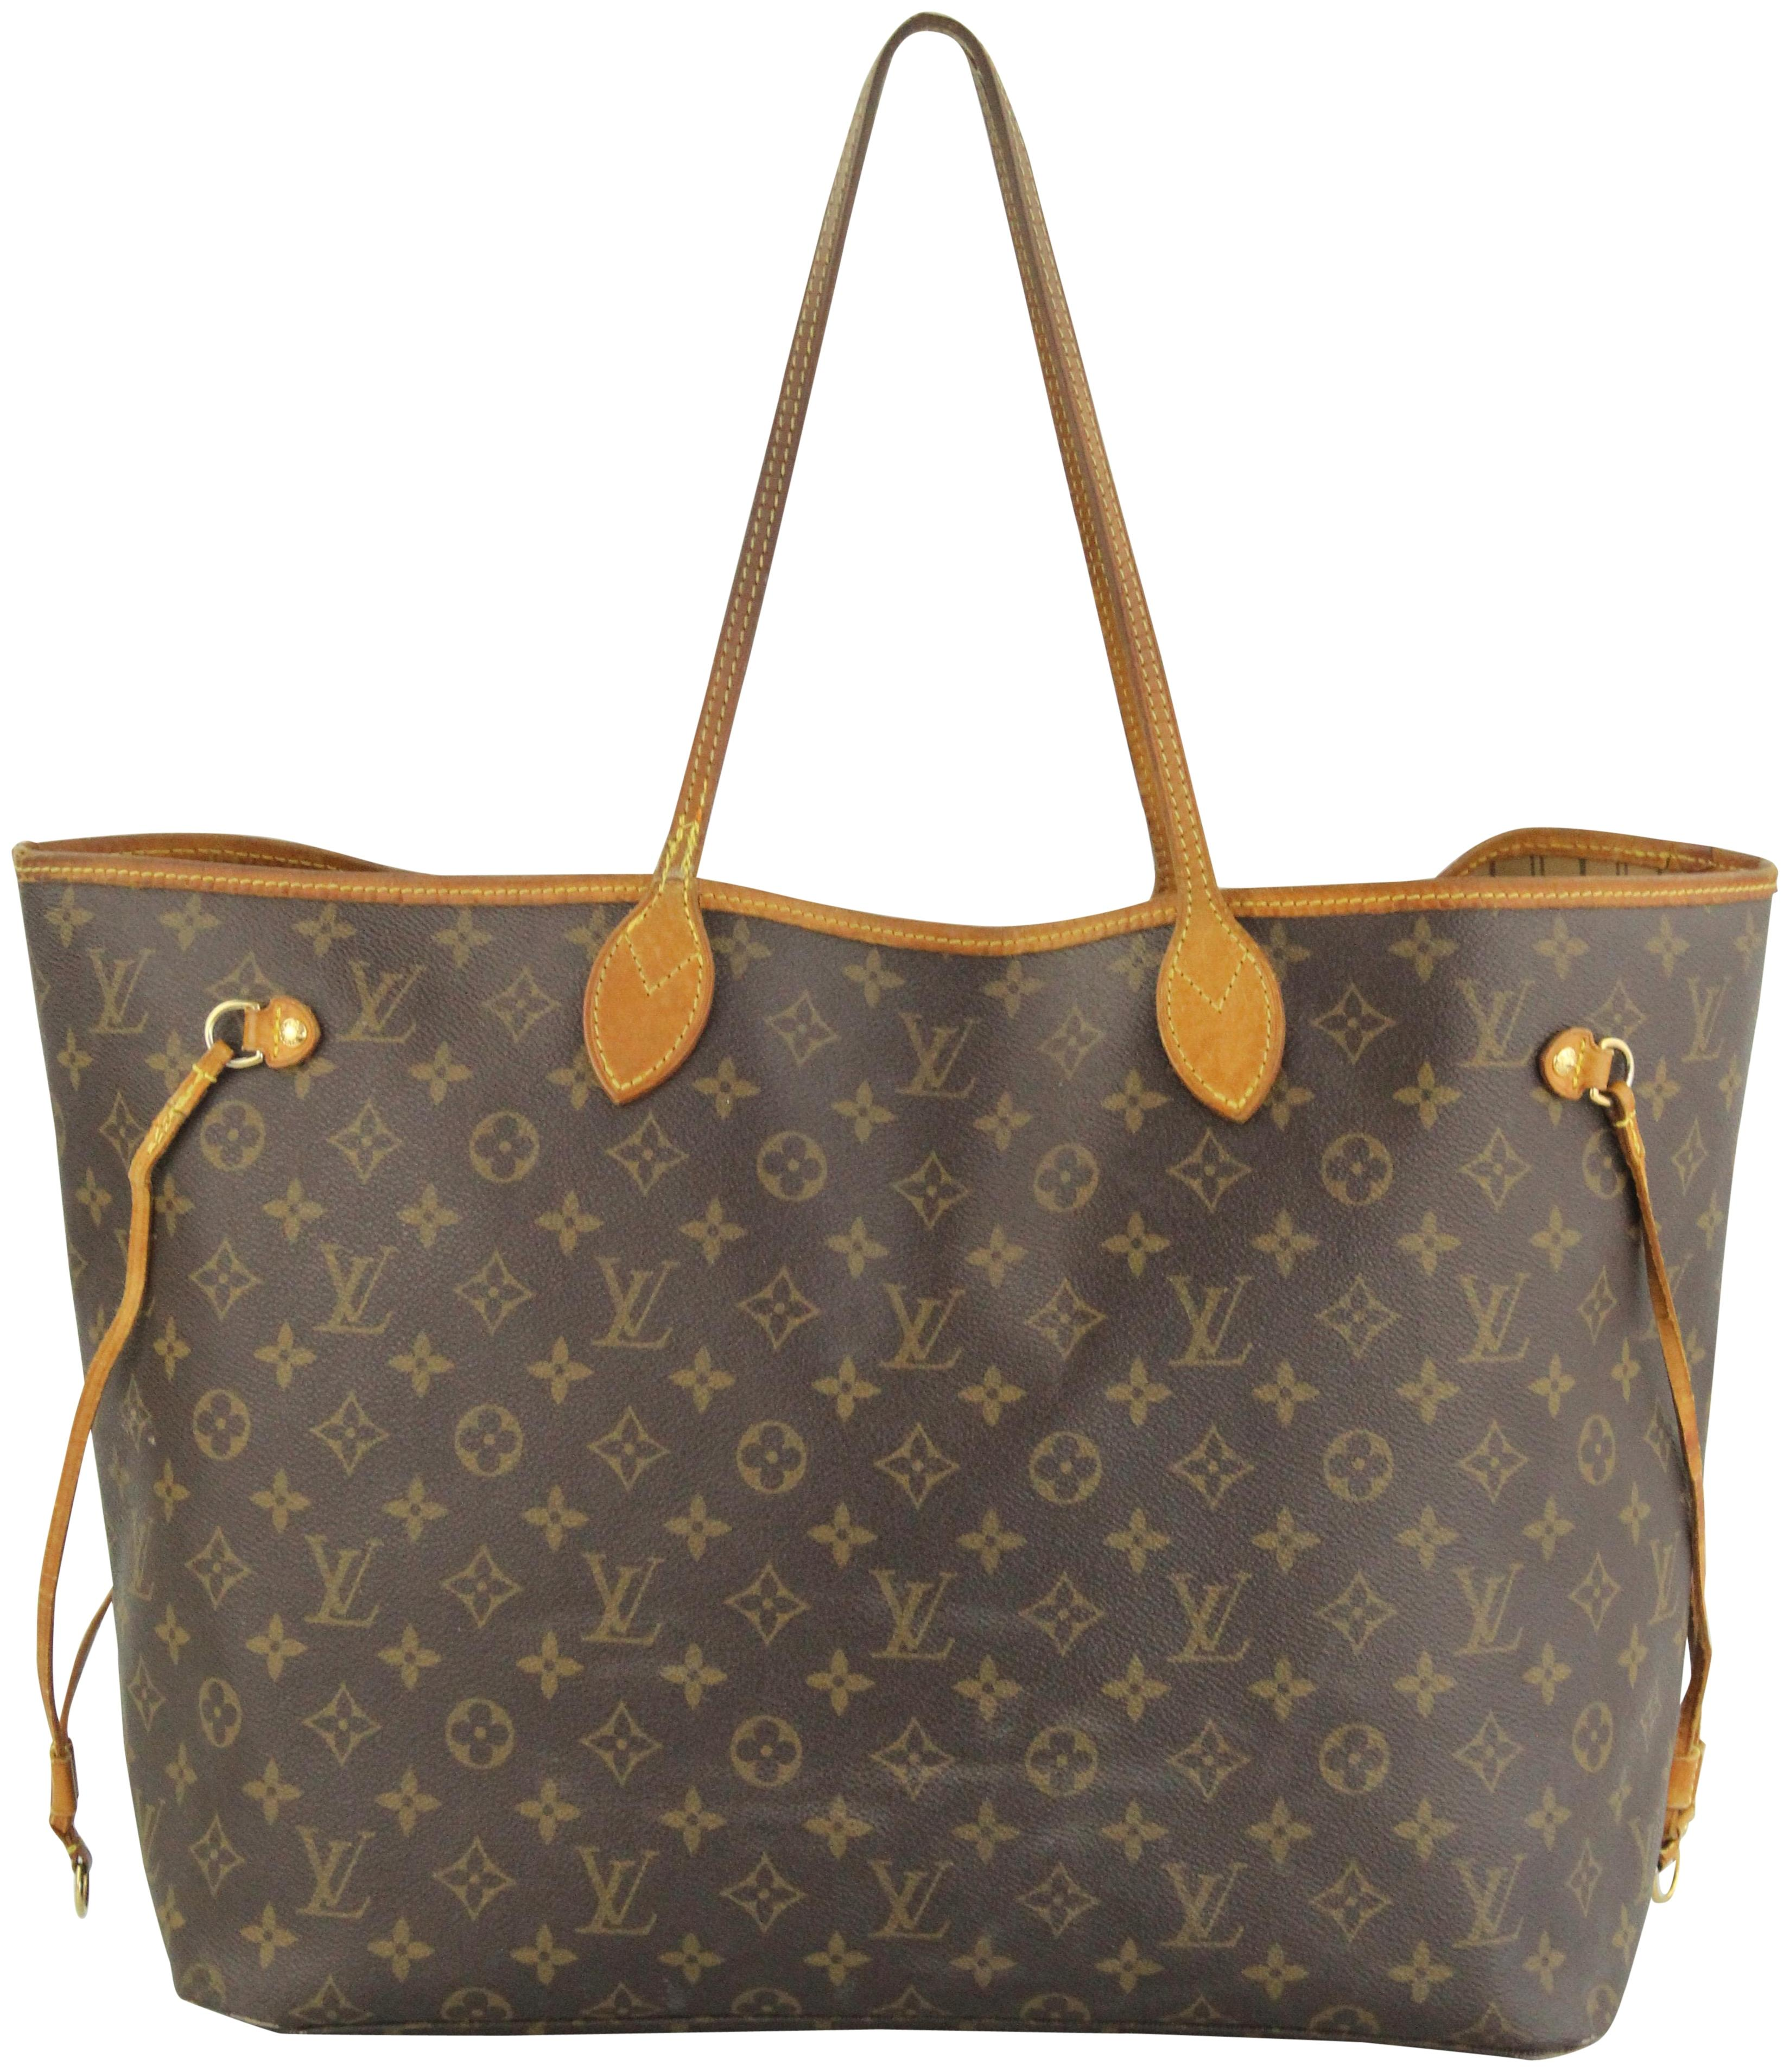 louis vuitton neverfull white. louis vuitton neverfull gm large lv tote in monogram white